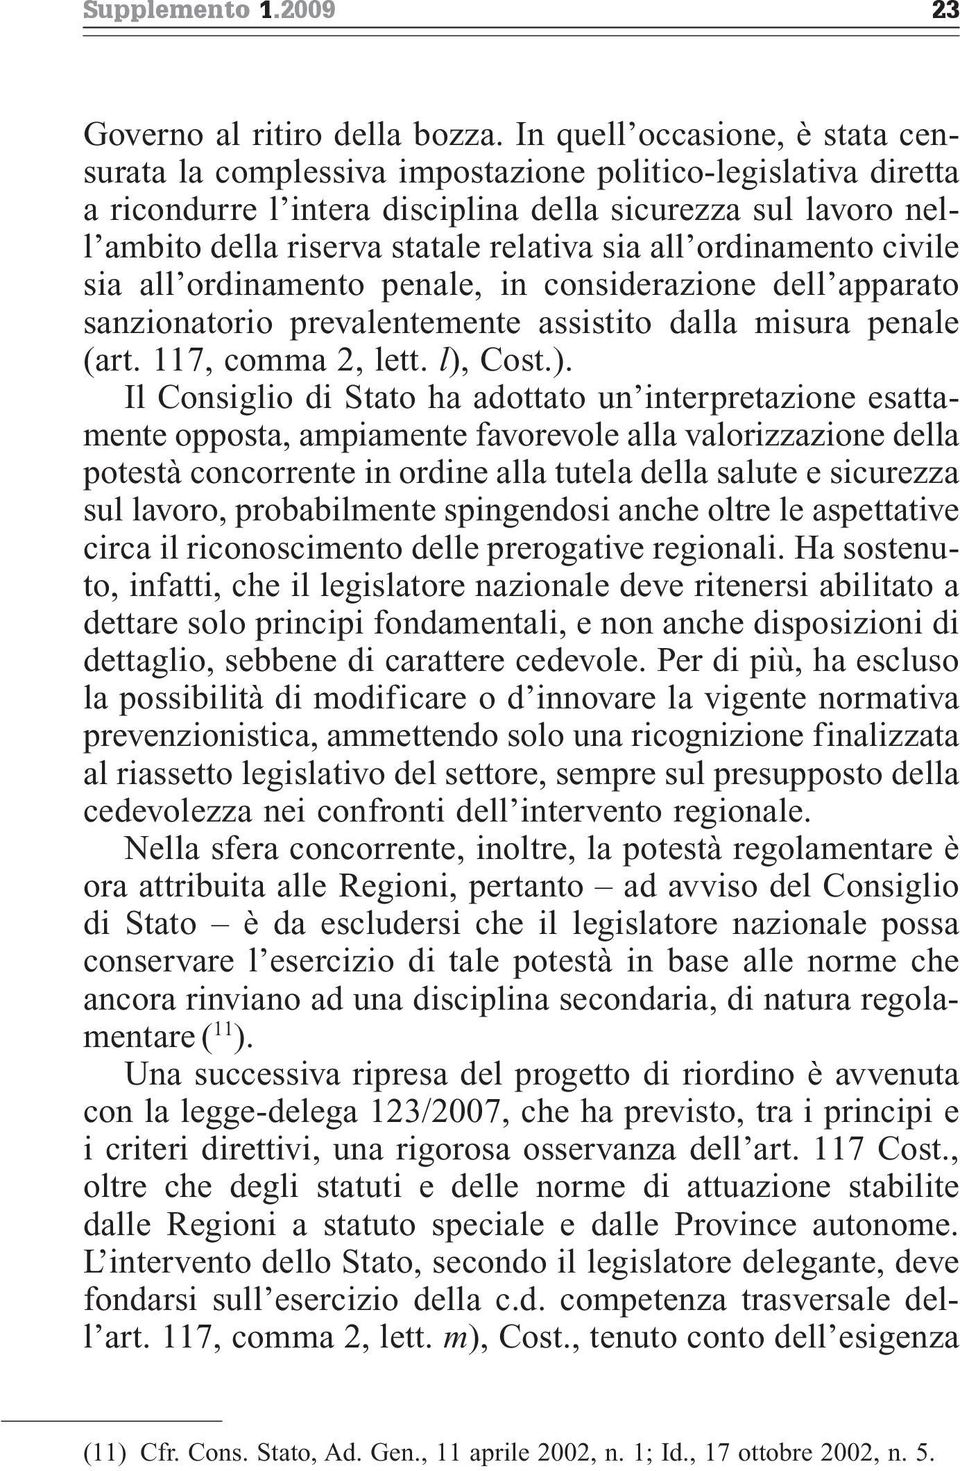 sia all ordinamento civile sia all ordinamento penale, in considerazione dell apparato sanzionatorio prevalentemente assistito dalla misura penale (art. 117, comma 2, lett. l),